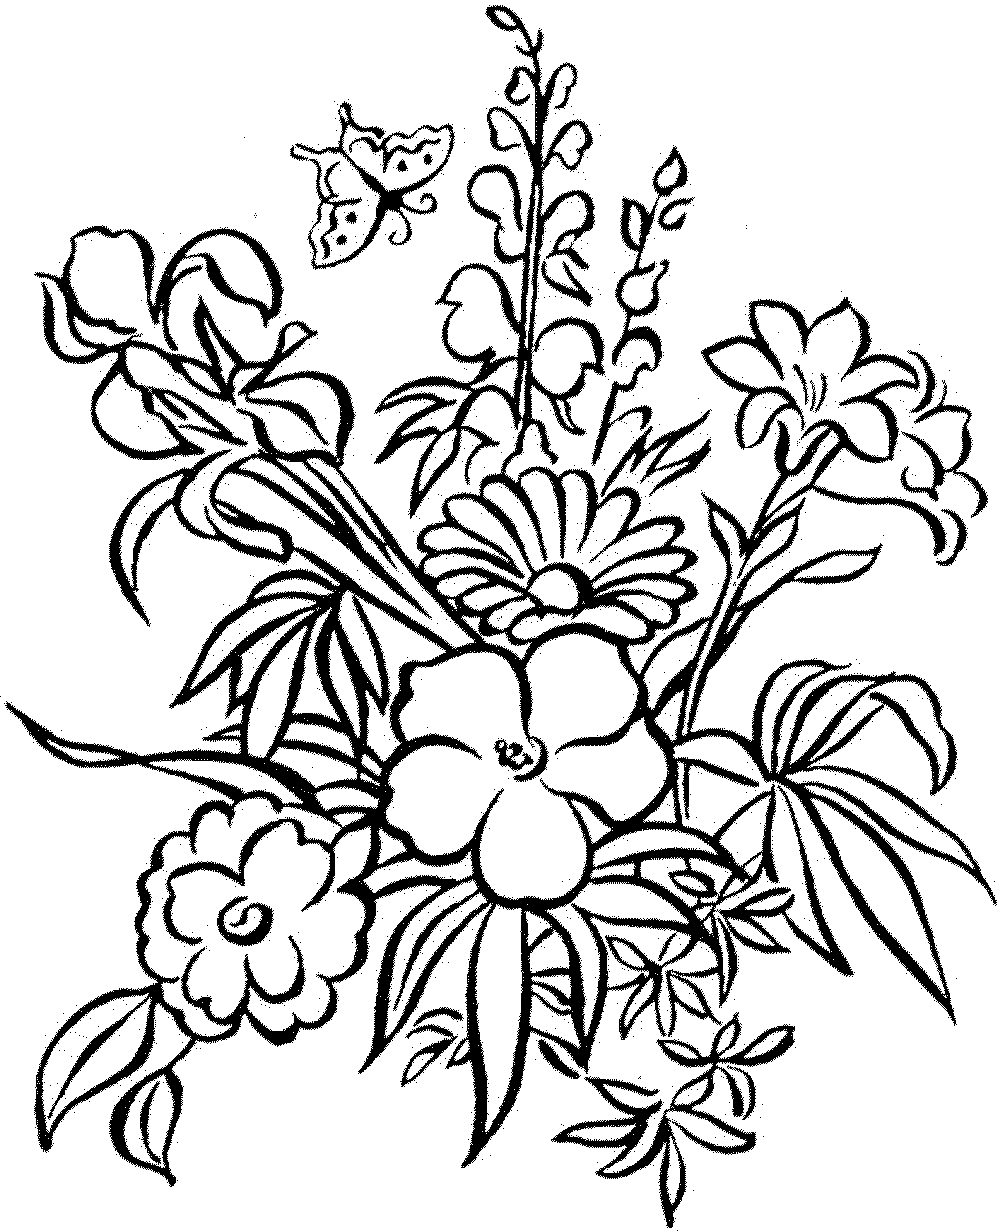 flowers coloring page free printable flower coloring pages for kids best page flowers coloring